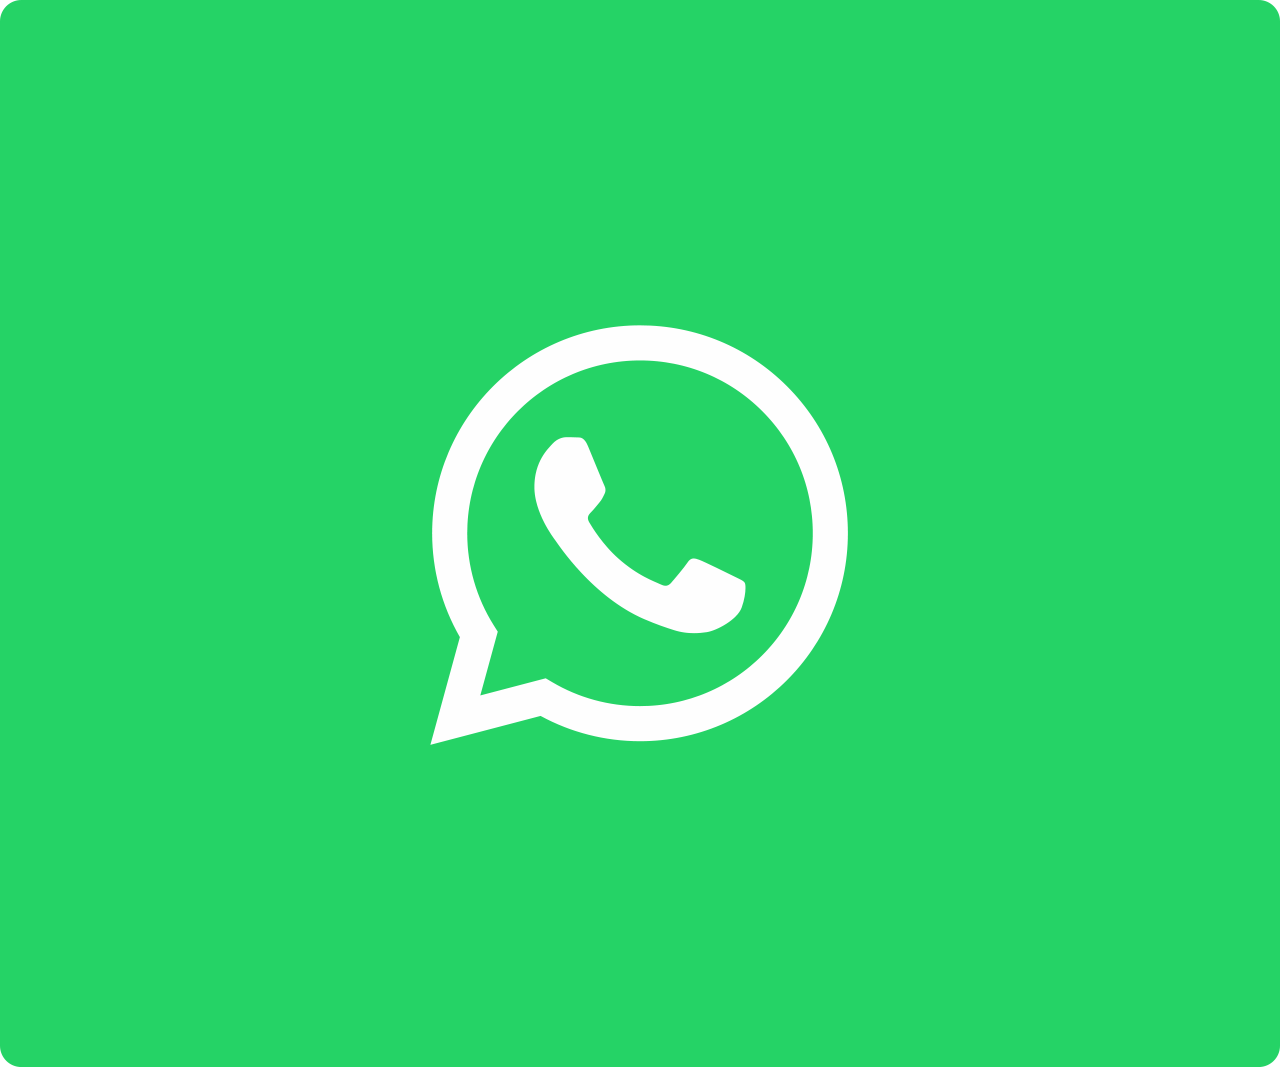 Why Whatsapp's design makes it the best instant messenger